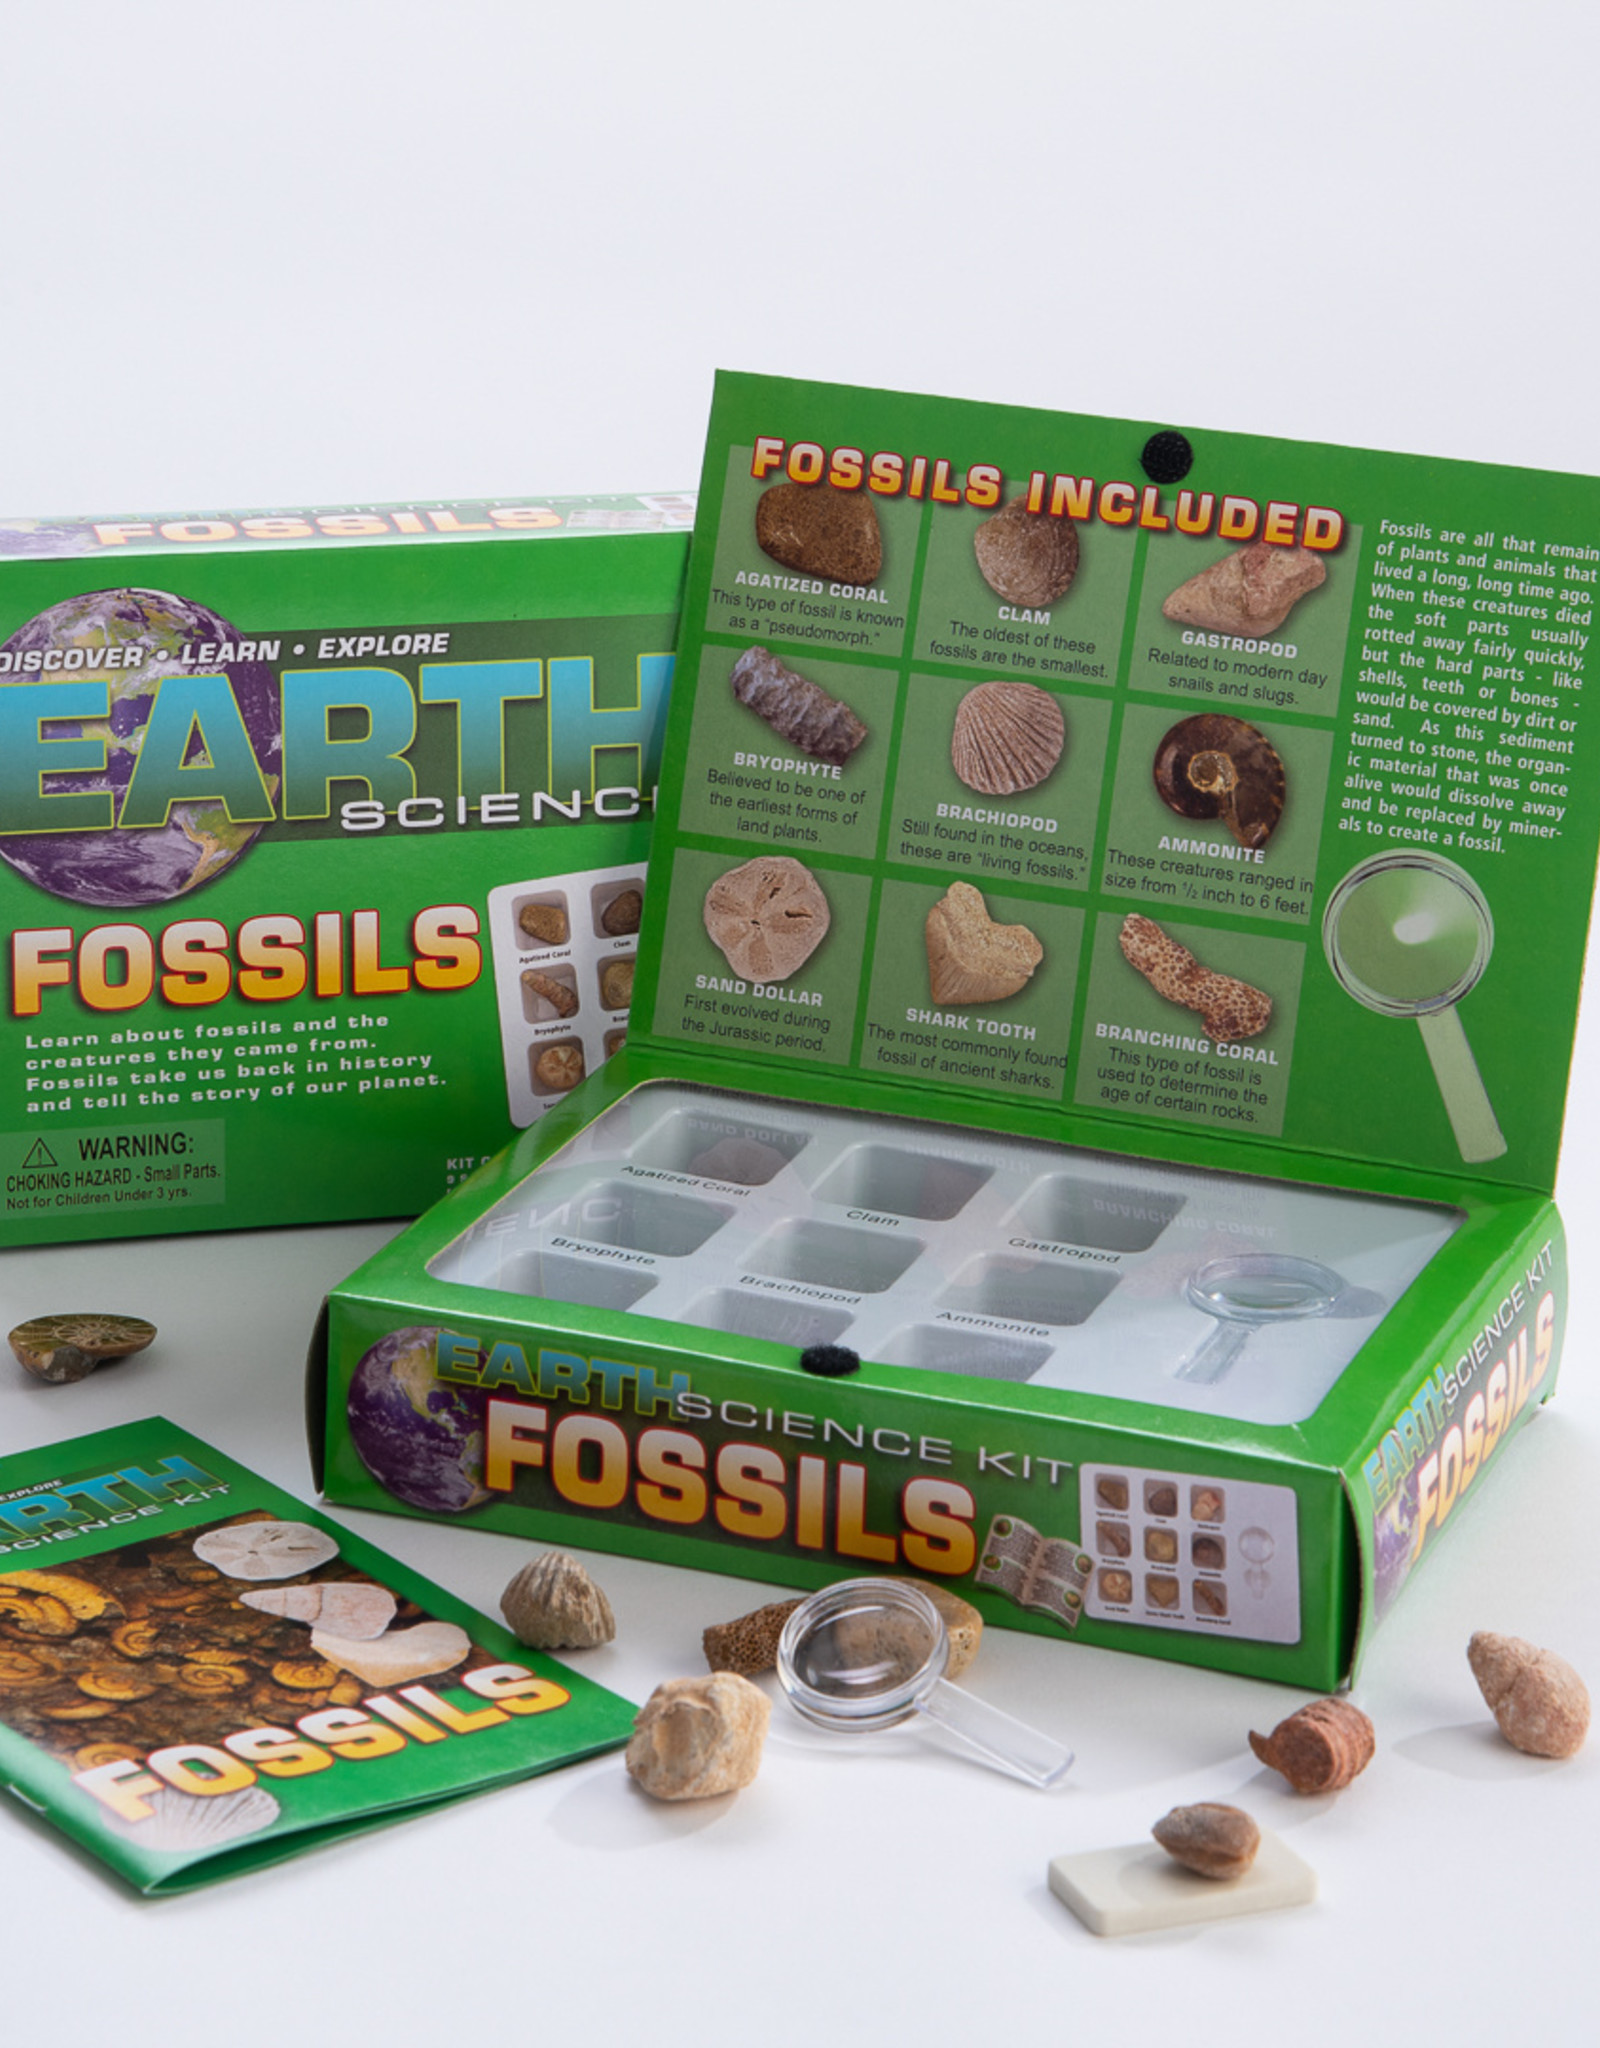 Fossils Earth Science Kit